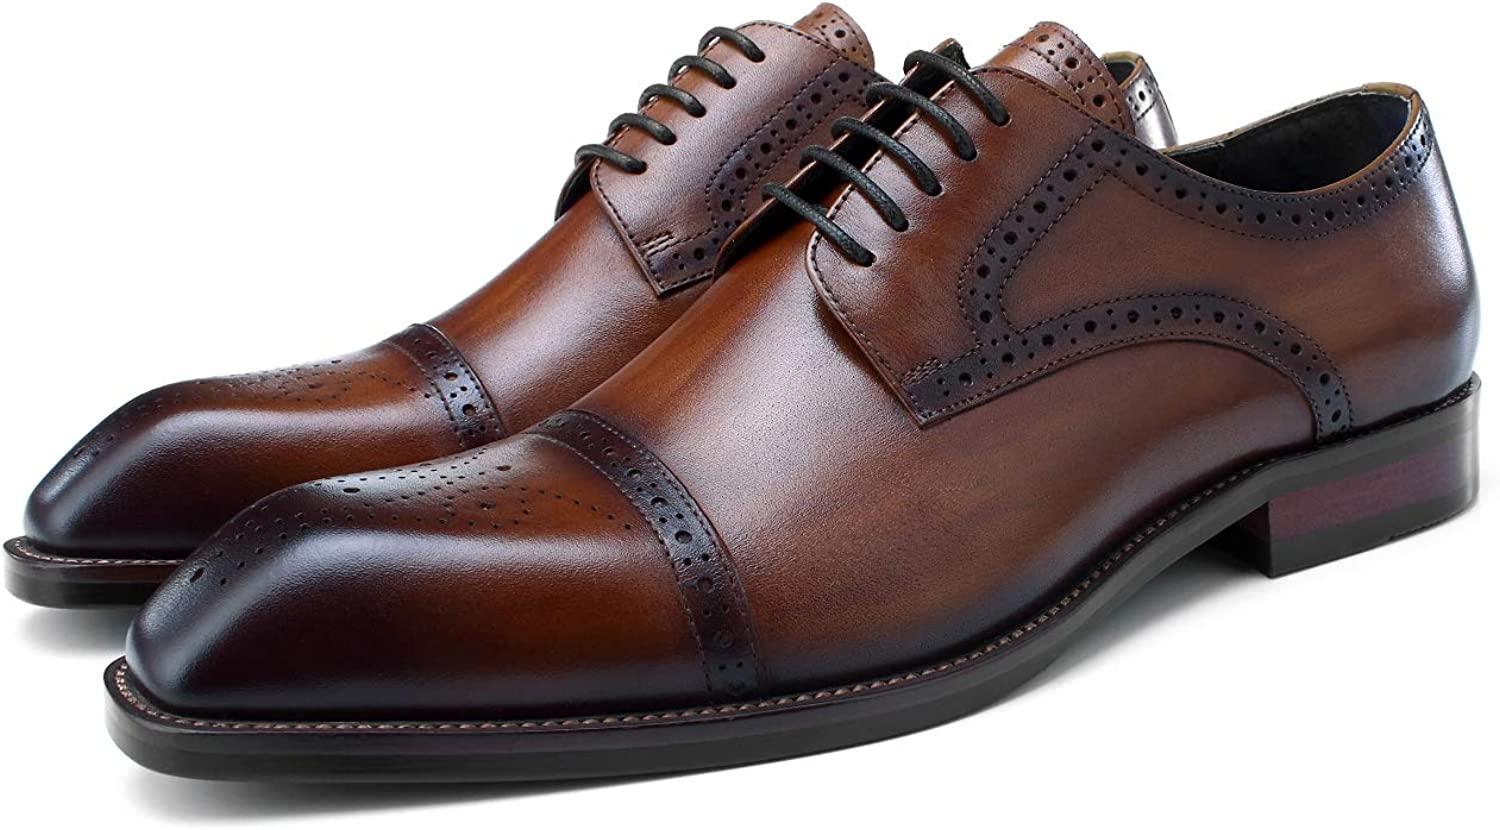 BONGZUO Derby shoes, Square Head Carved Derby Handmade European Version Business Dress Men Leather Breathable Leather shoes, YMP64-D3H